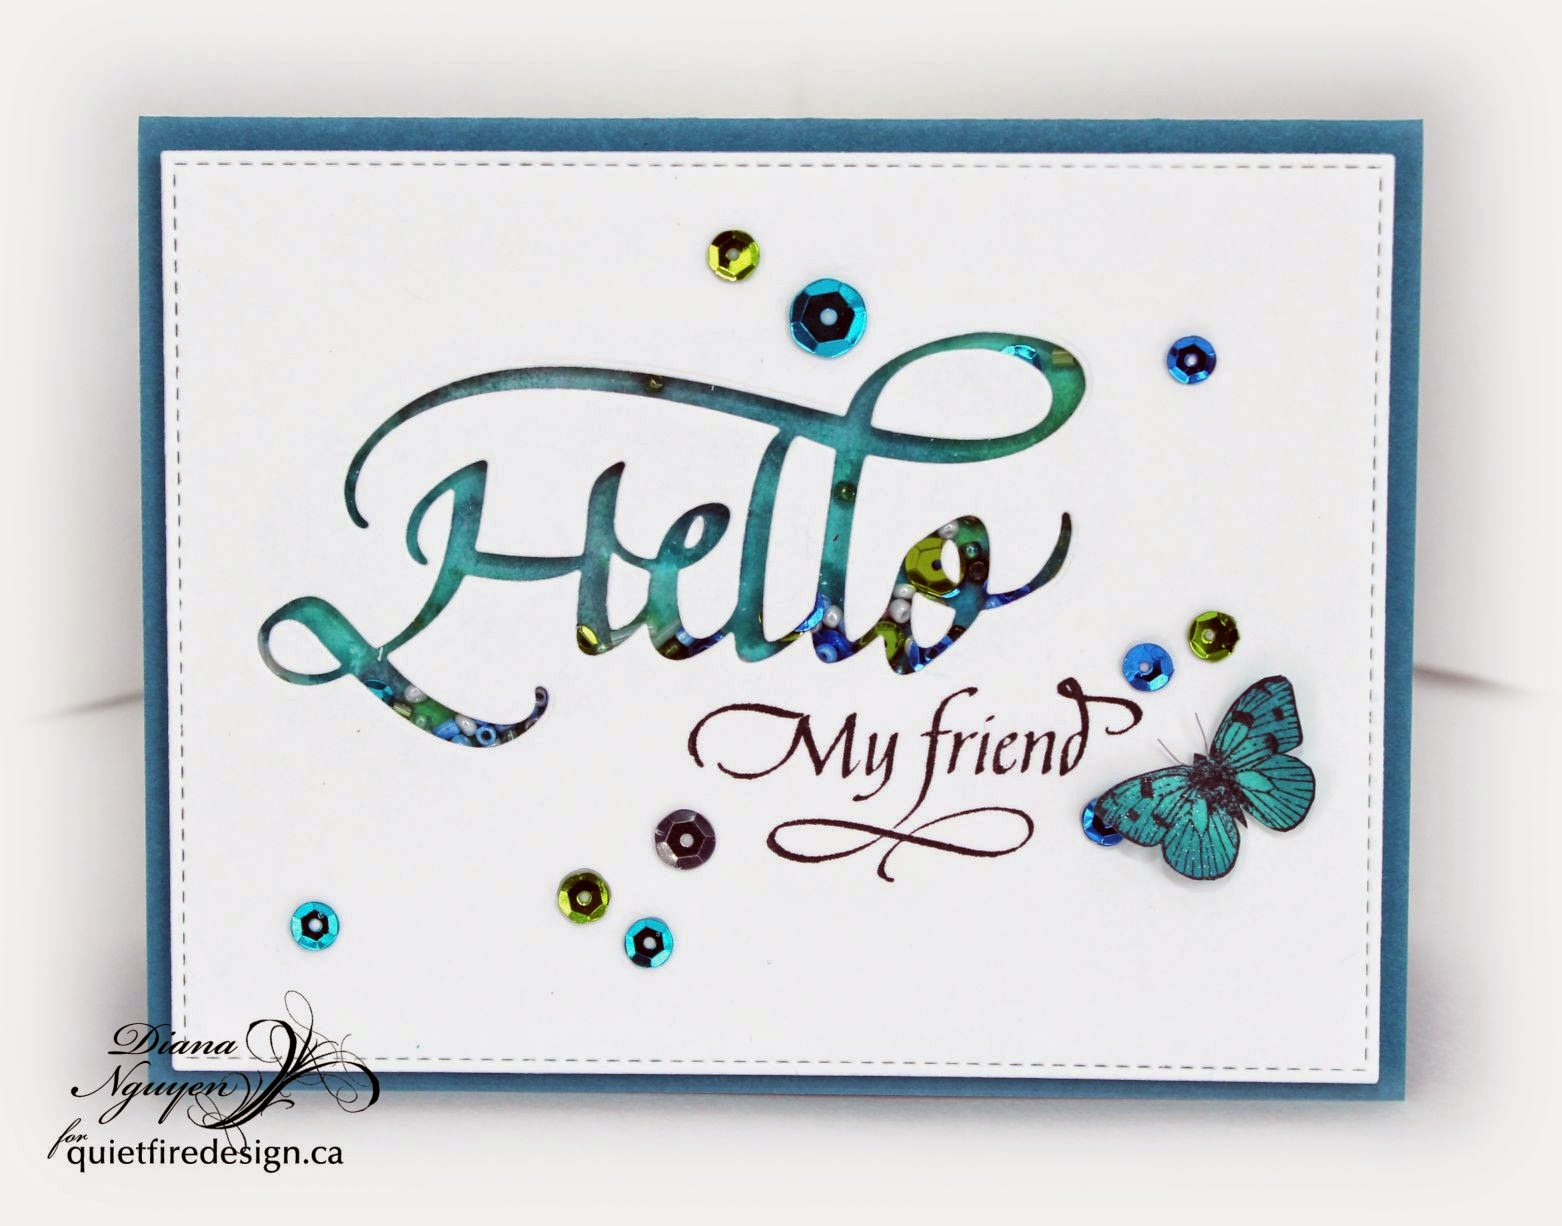 Quietfire Design, Hello die, butterflies, Diana Nguyen, friends